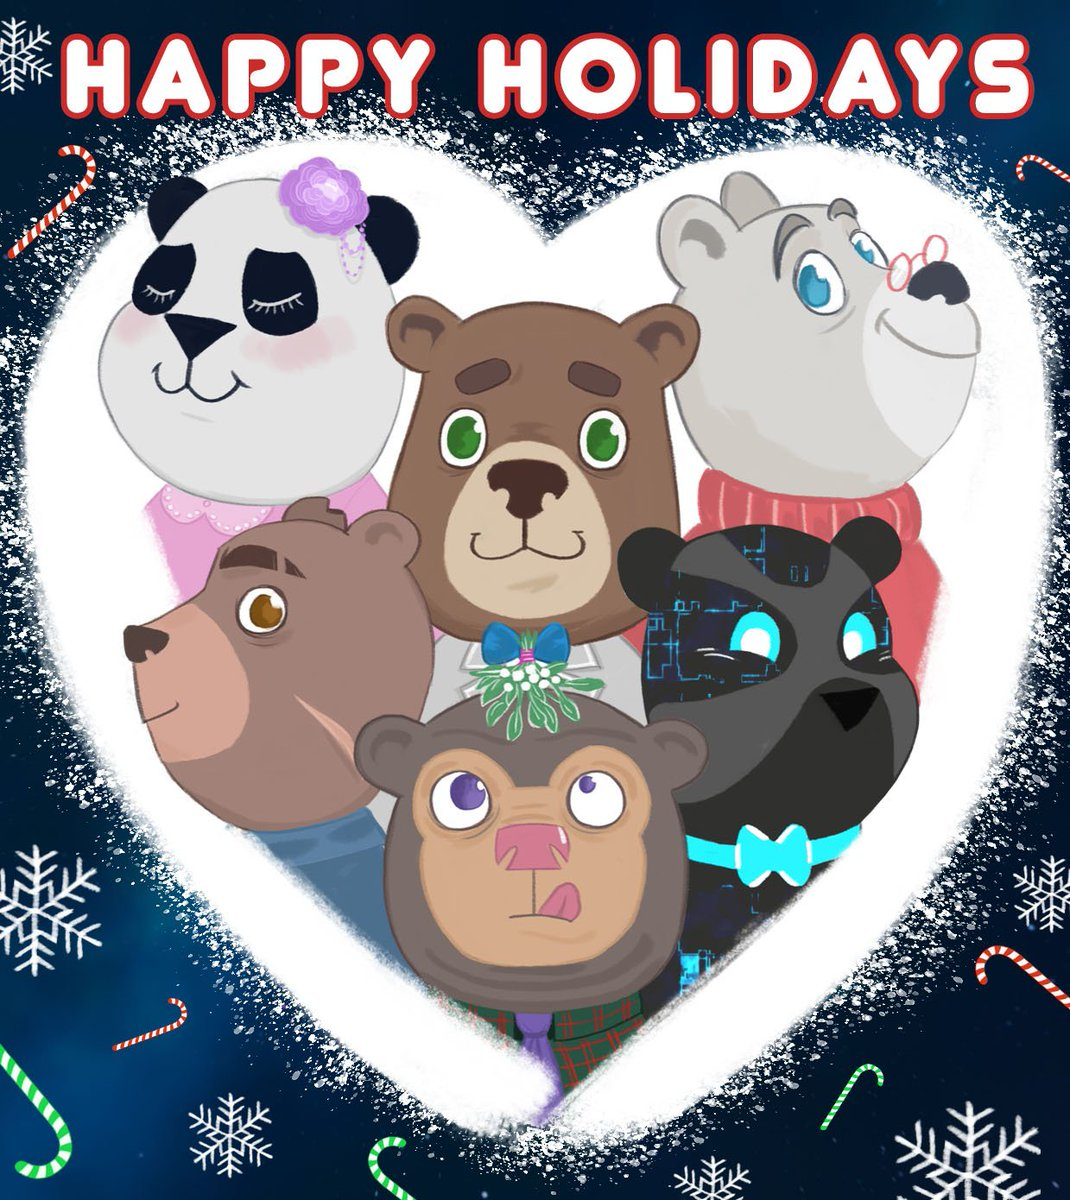 Our deepest apologies for the delay! More #AstroBearsParty content coming in 2018 - stay tuned for the exact date. Beary Merry Christmas!  #Holidays2017 #NintendoSwitch #Switch<br>http://pic.twitter.com/VLhcJiFEbW